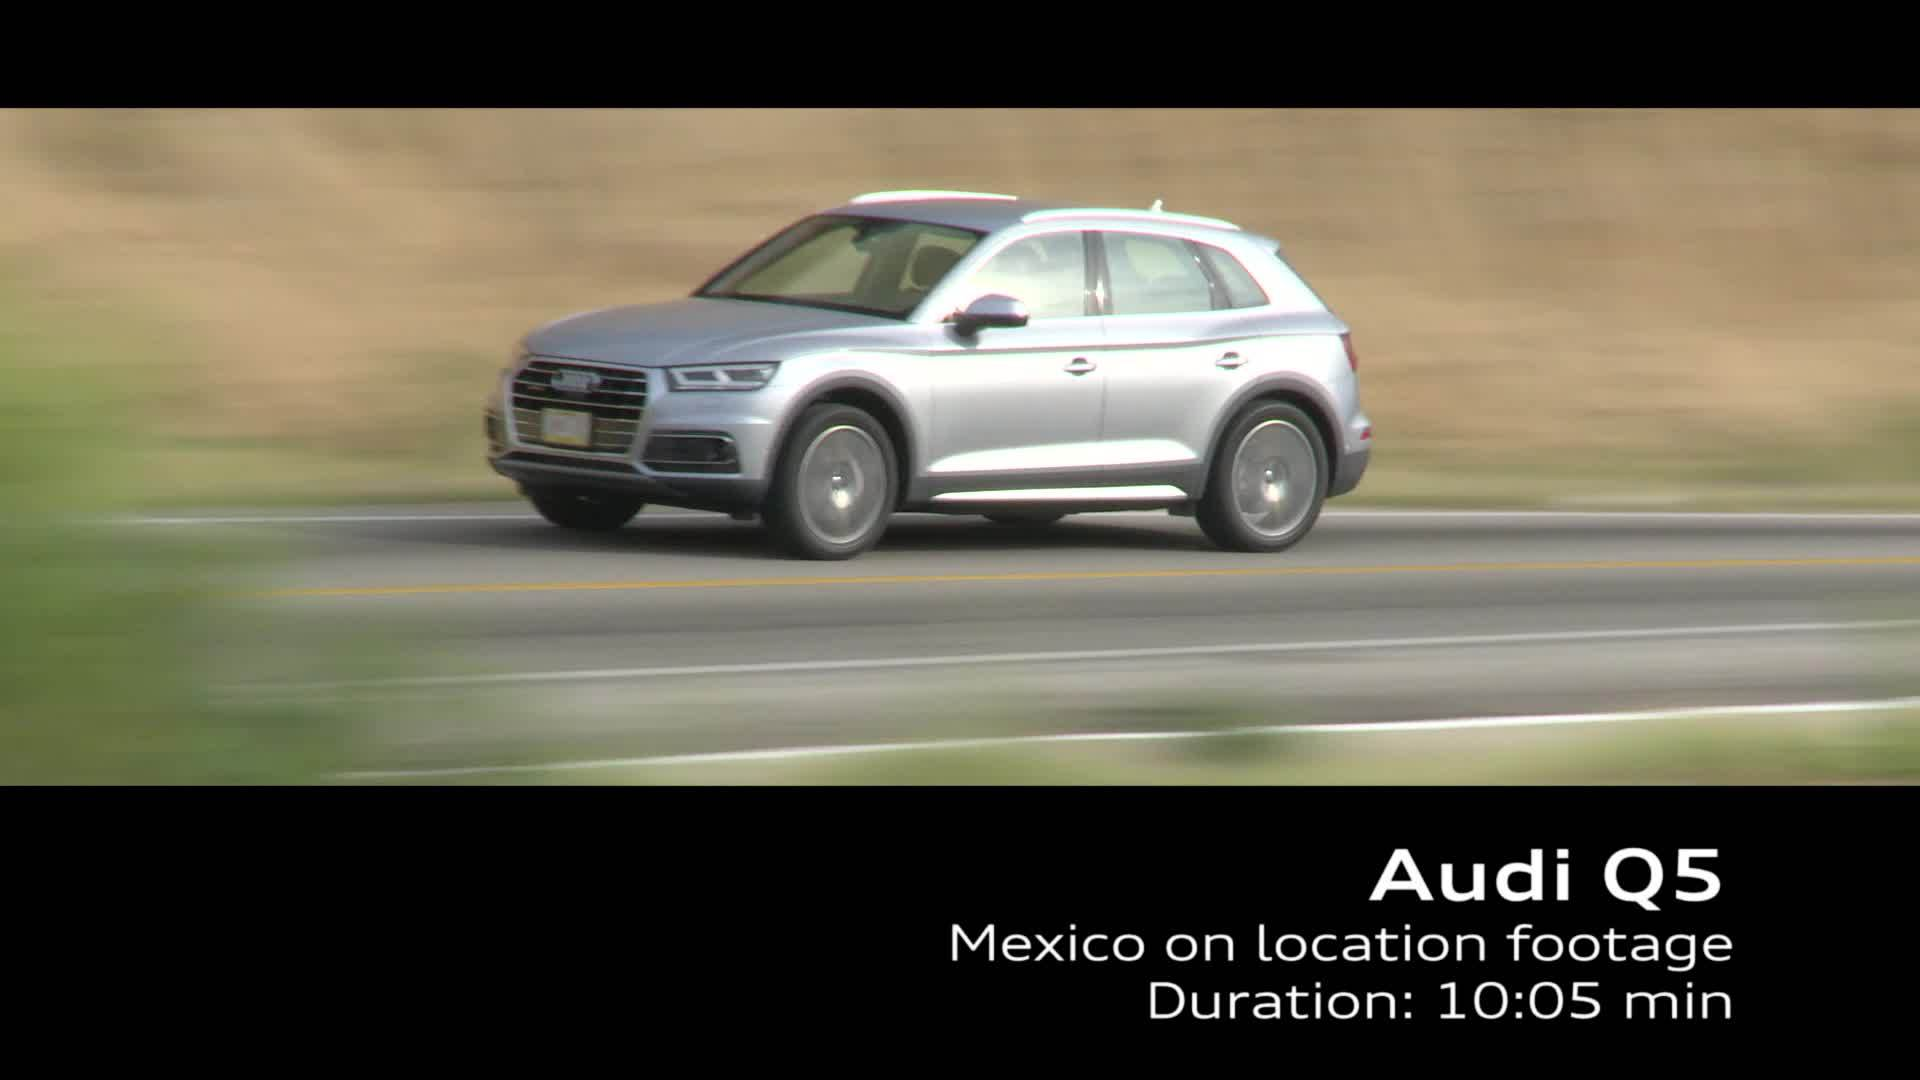 Audi Q5 on Location Footage TDI